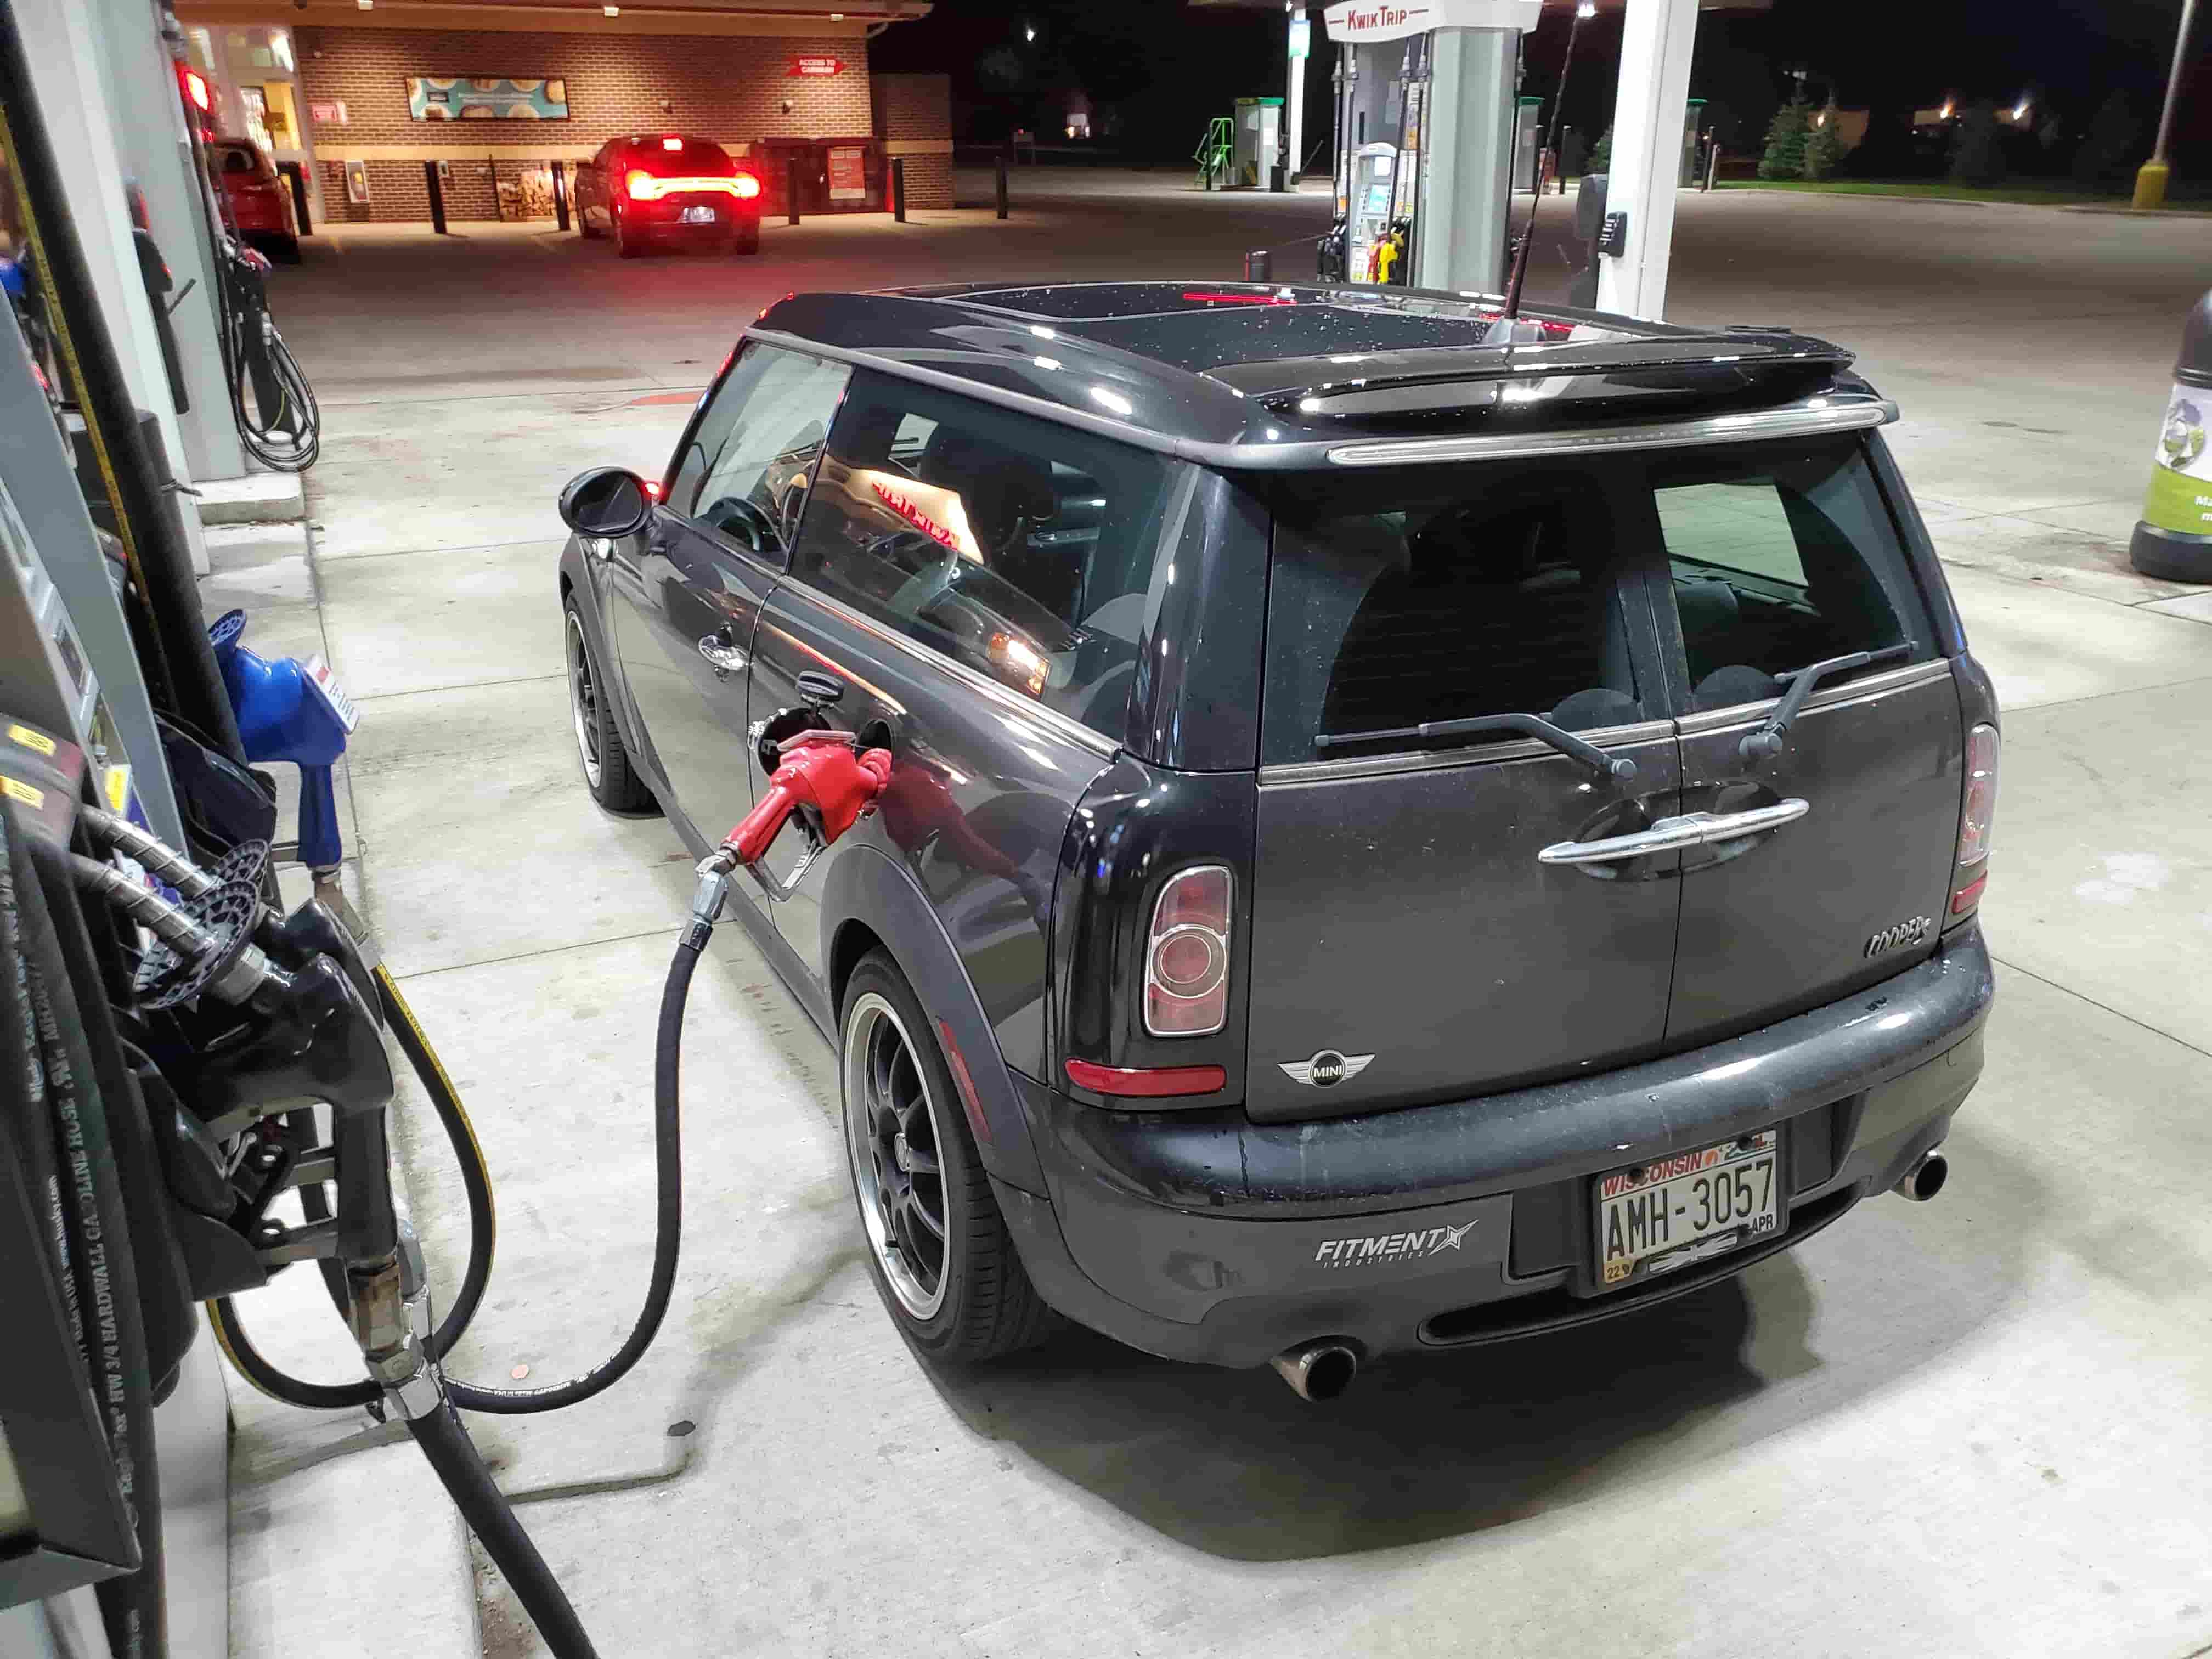 Mini cooper at the gas station filling up